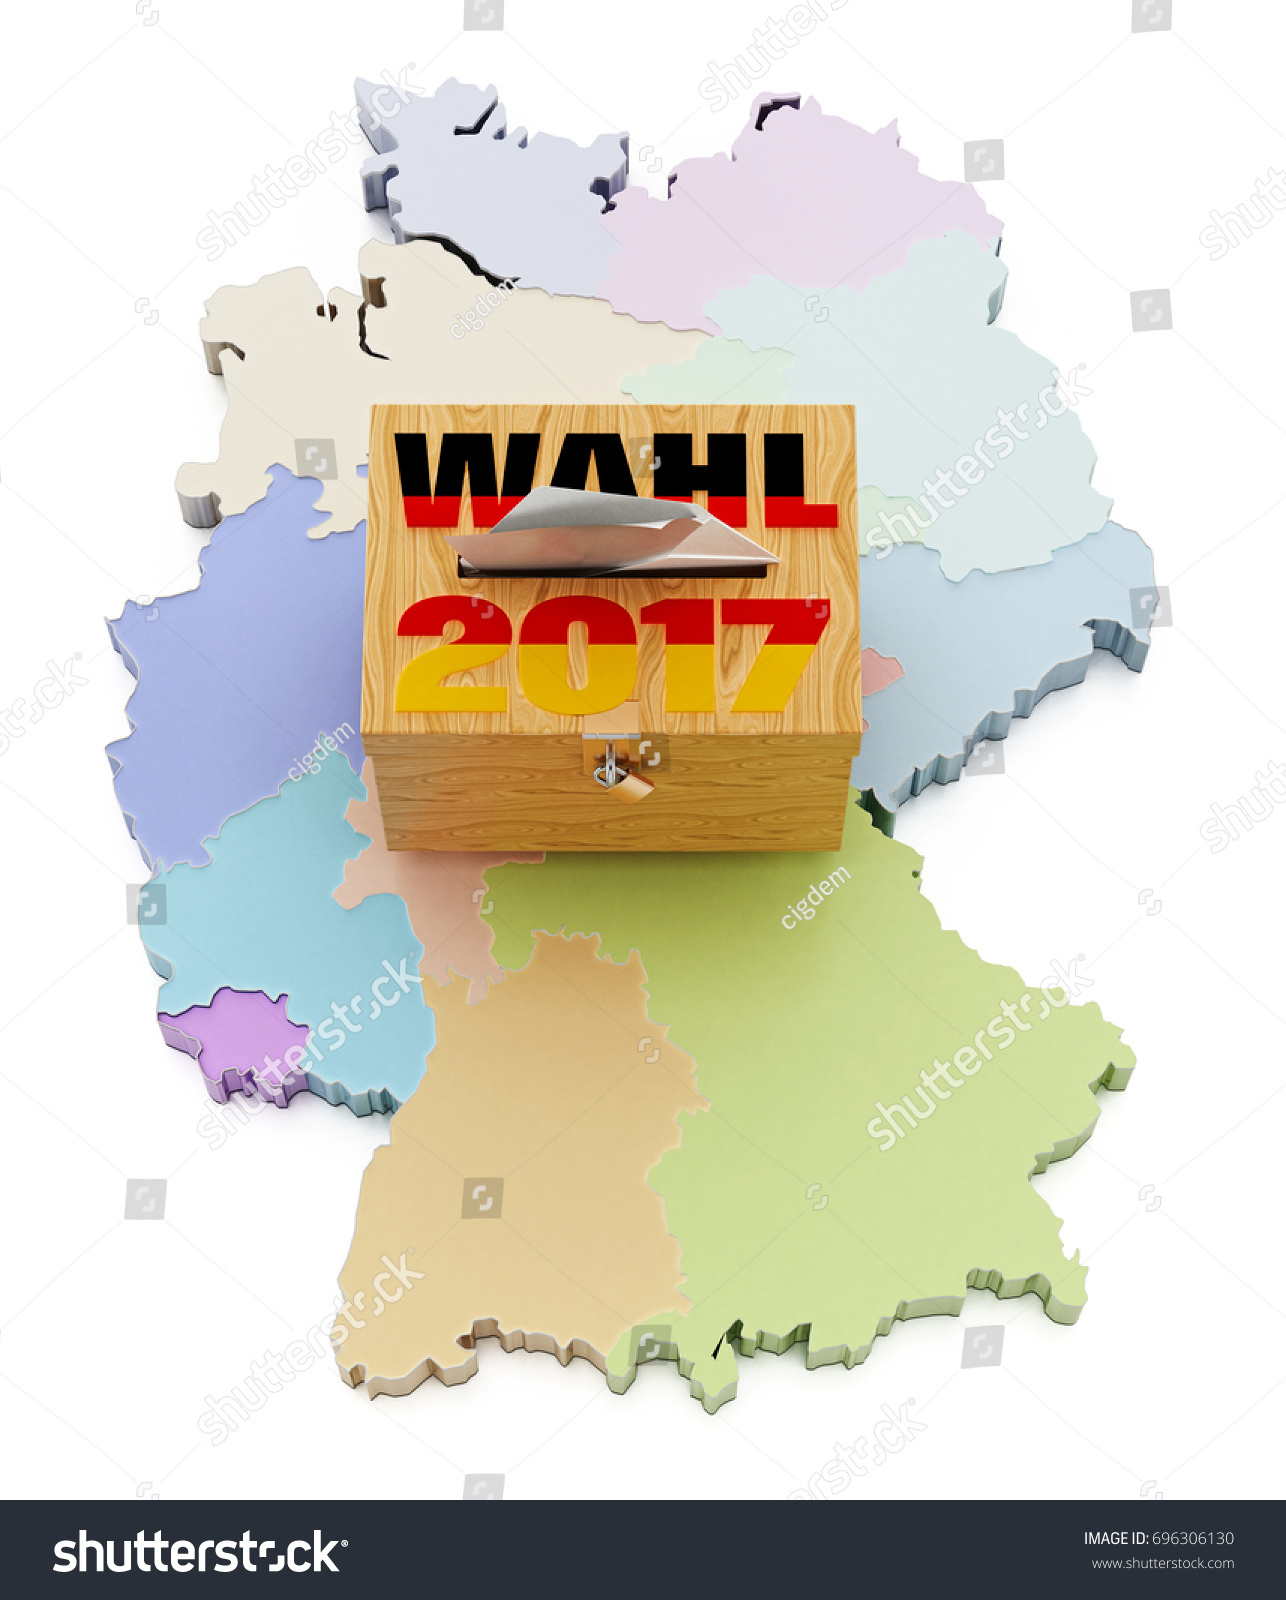 ballot box on germany map divided into regions 3d illustration